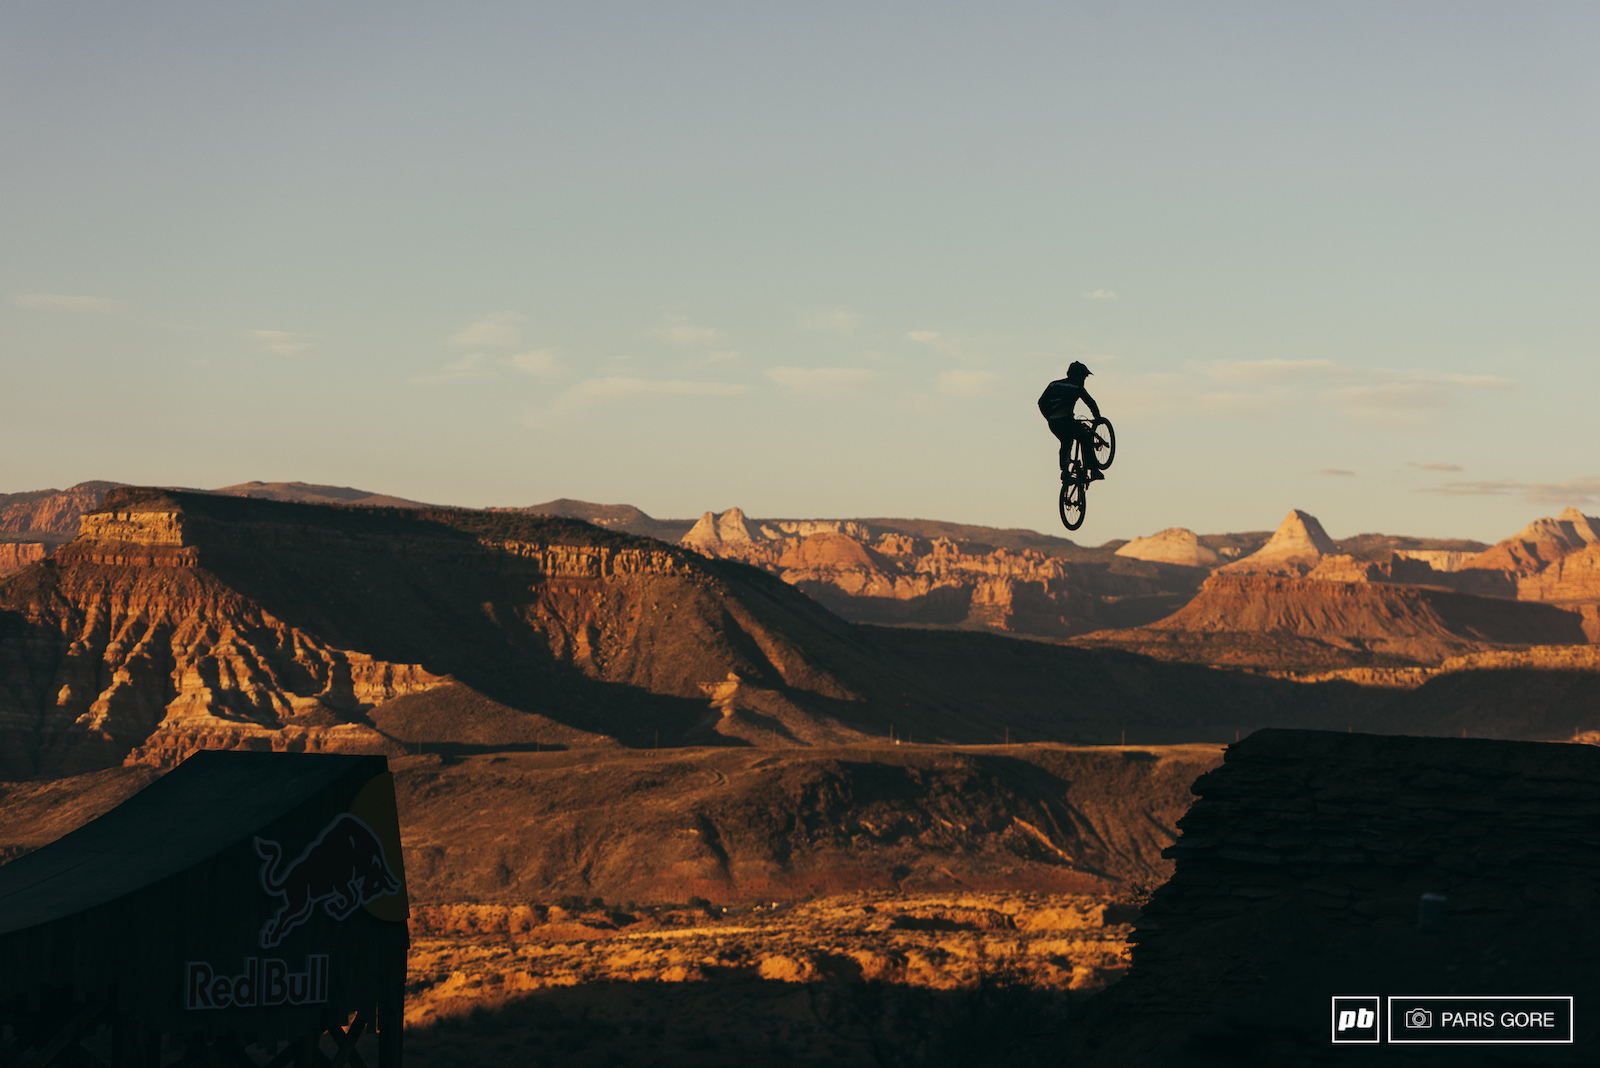 Tom Van Steenbergen cleaned the canyon gap today after 50 50ing it the first time a few days ago.